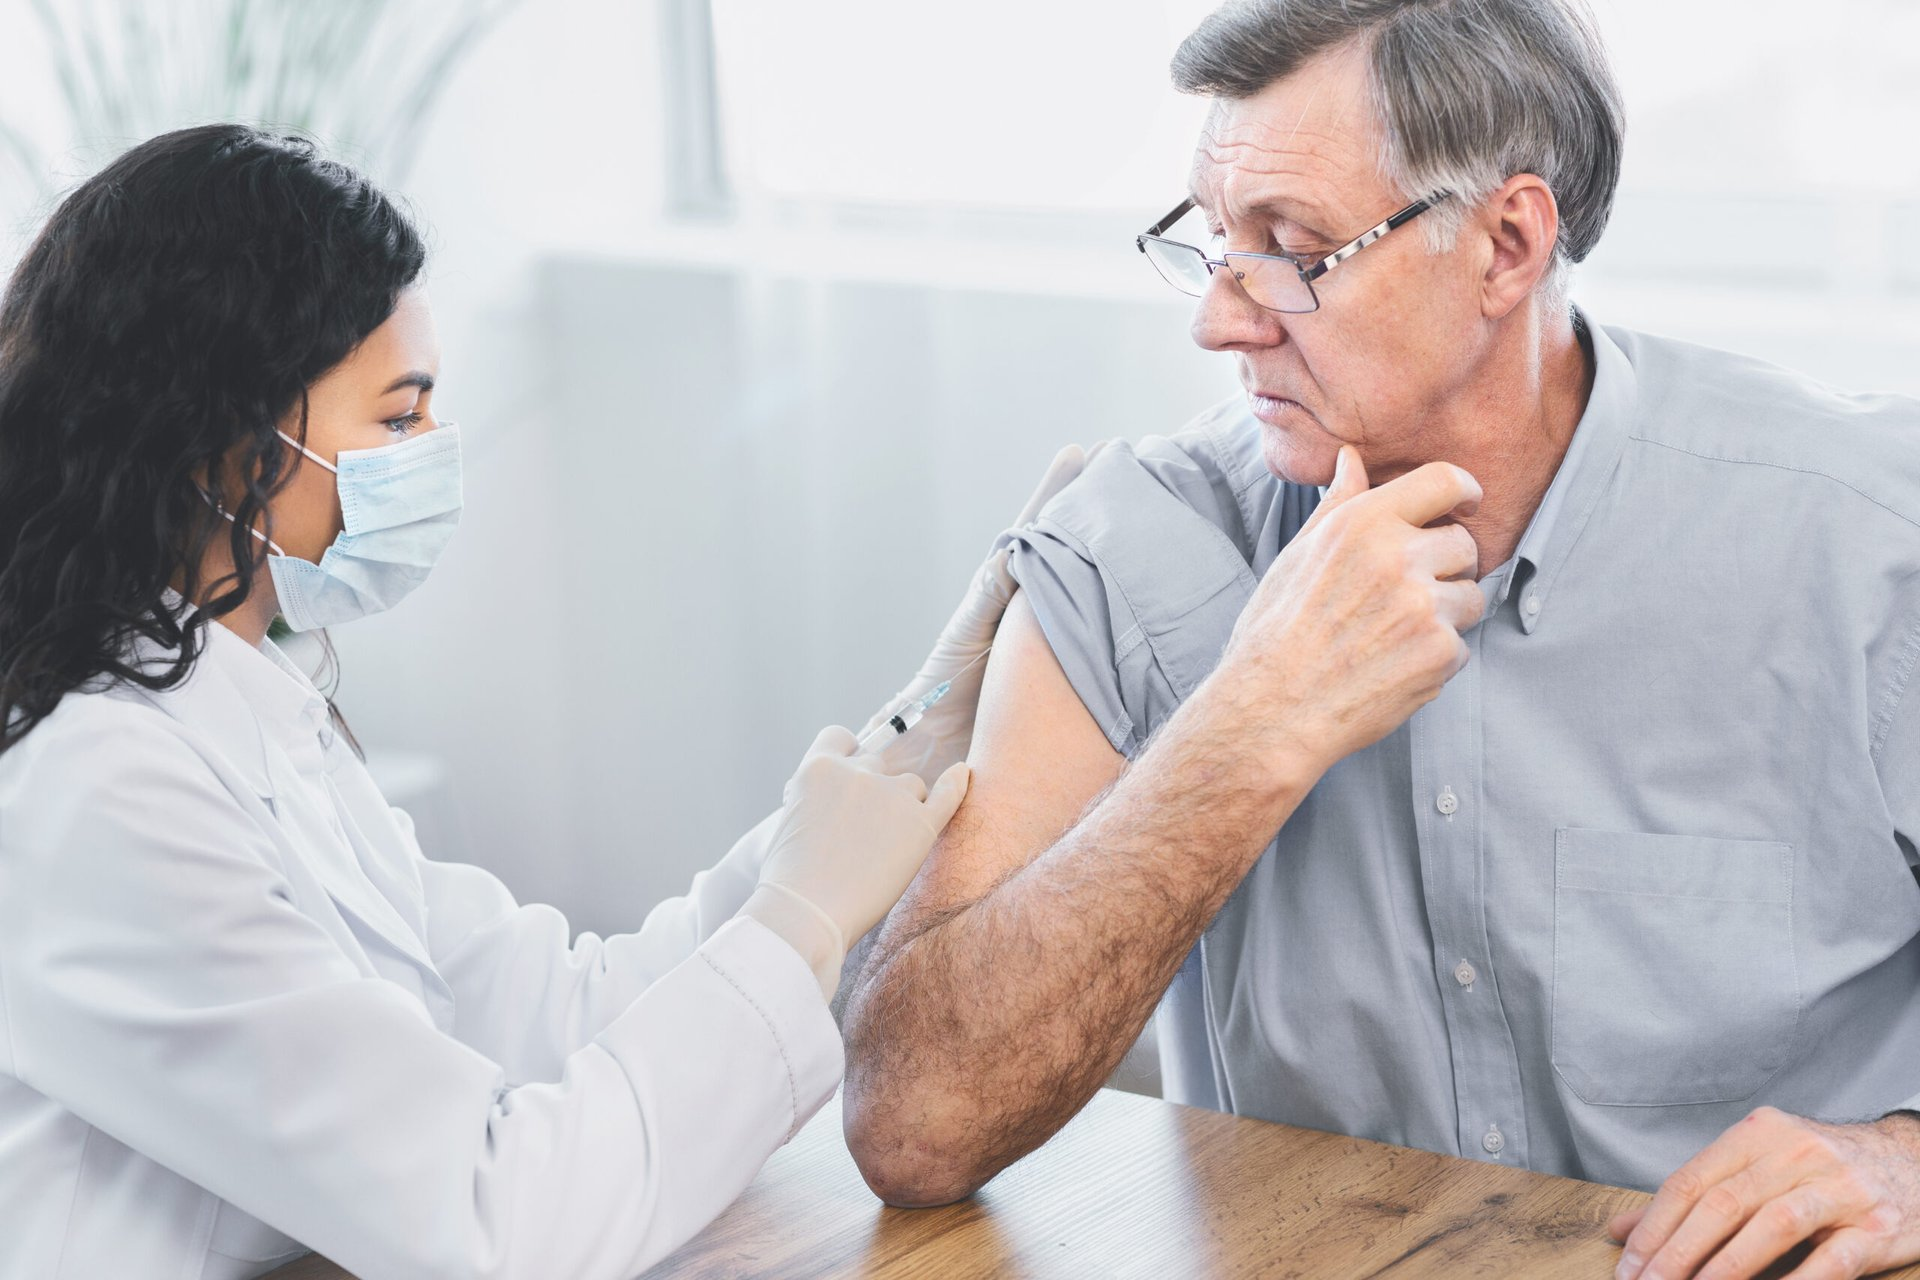 6 Retailers That Will Reward You for Getting a Flu Shot in 2021